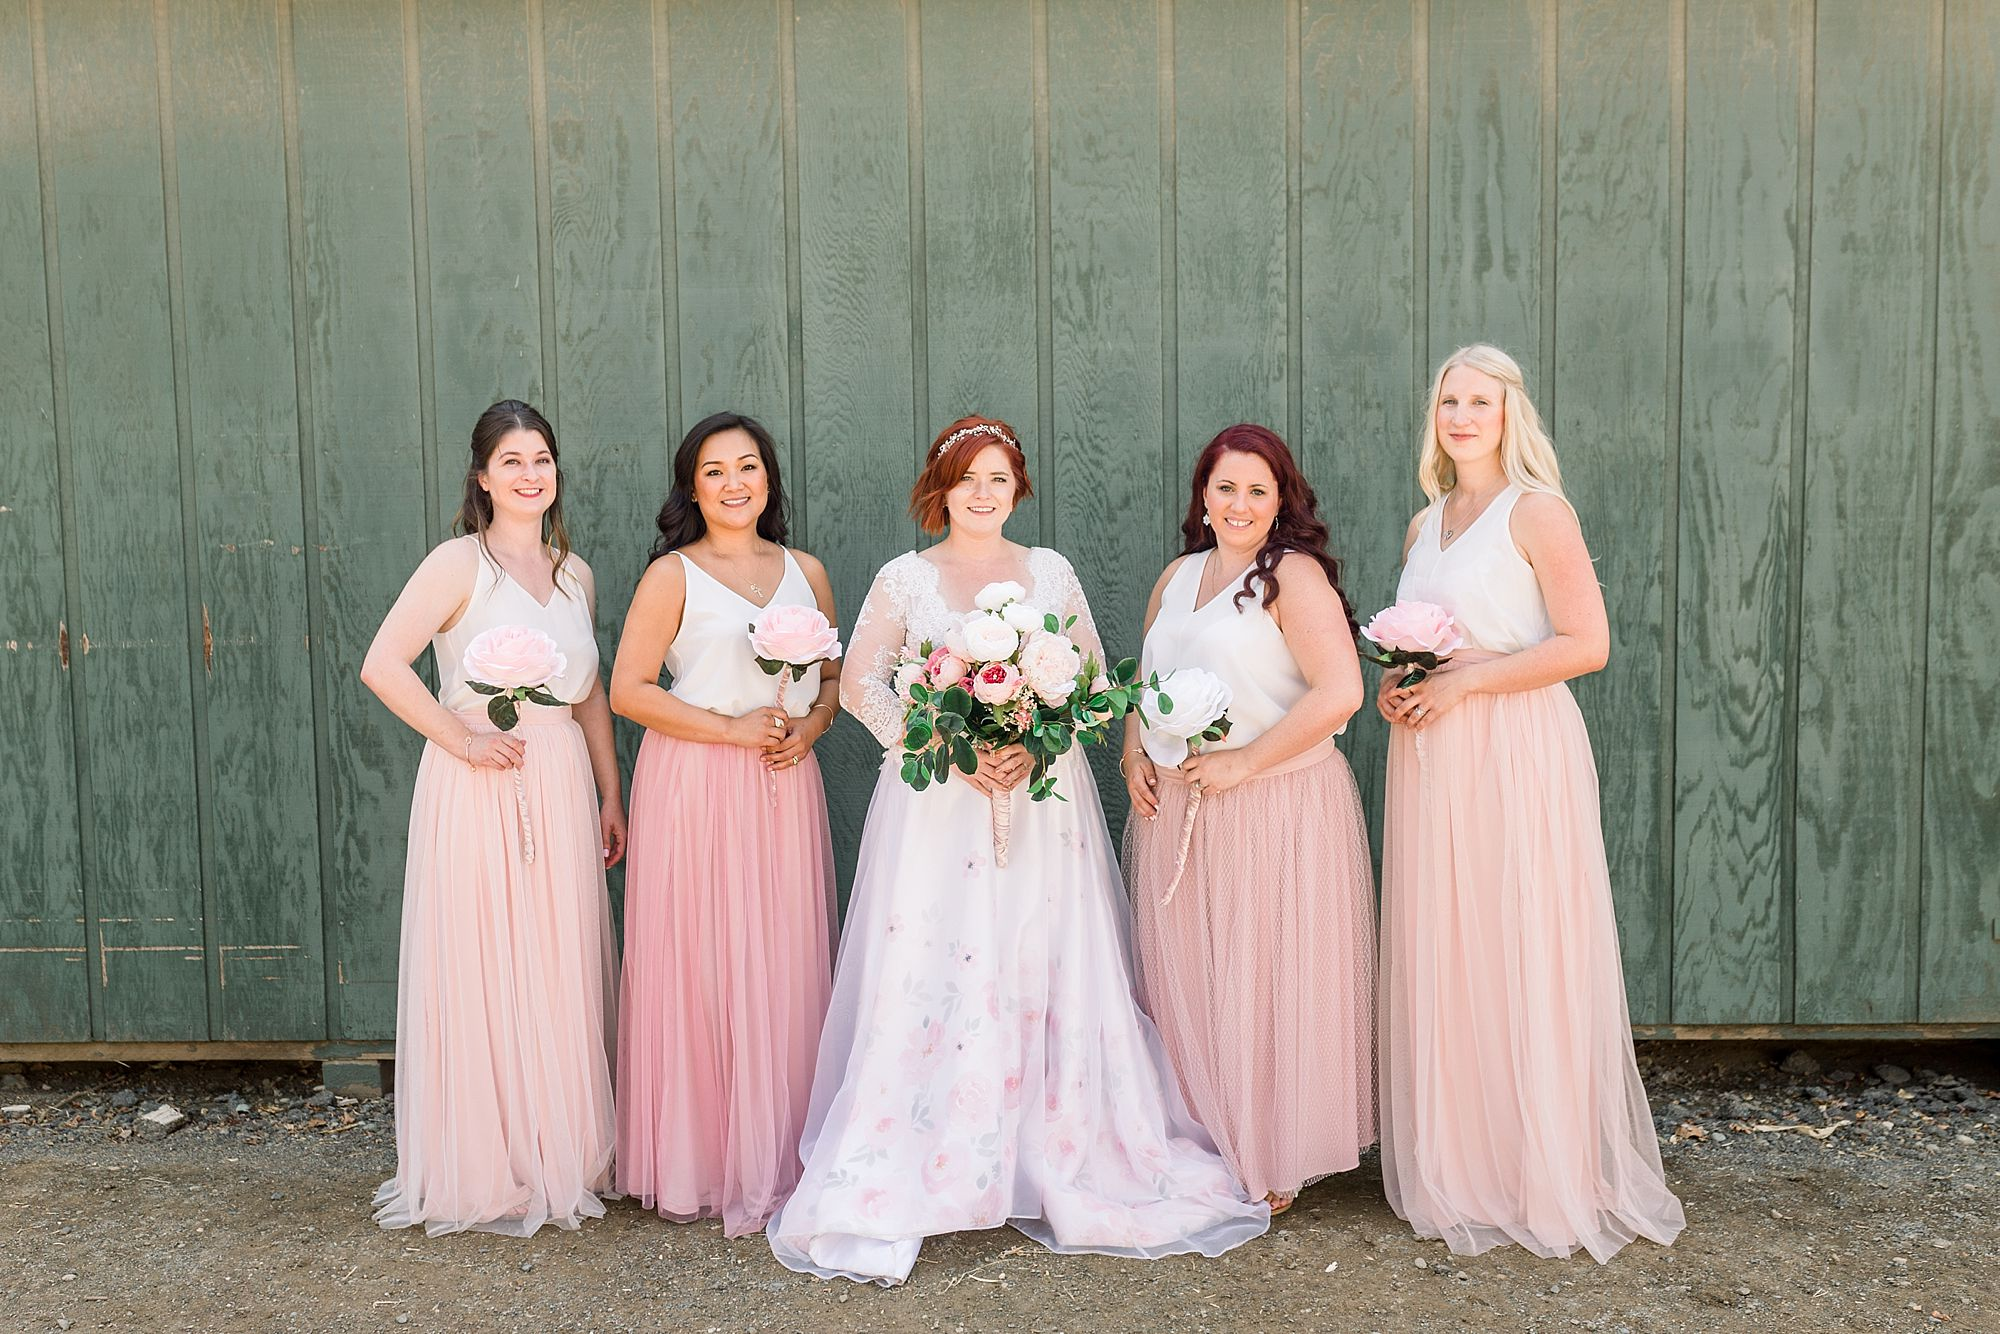 Bishops Pumpkin Farm Wedding - Annie and Logan - Ashley Baumgartner - Wheatland Wedding Photographer_0014.jpg